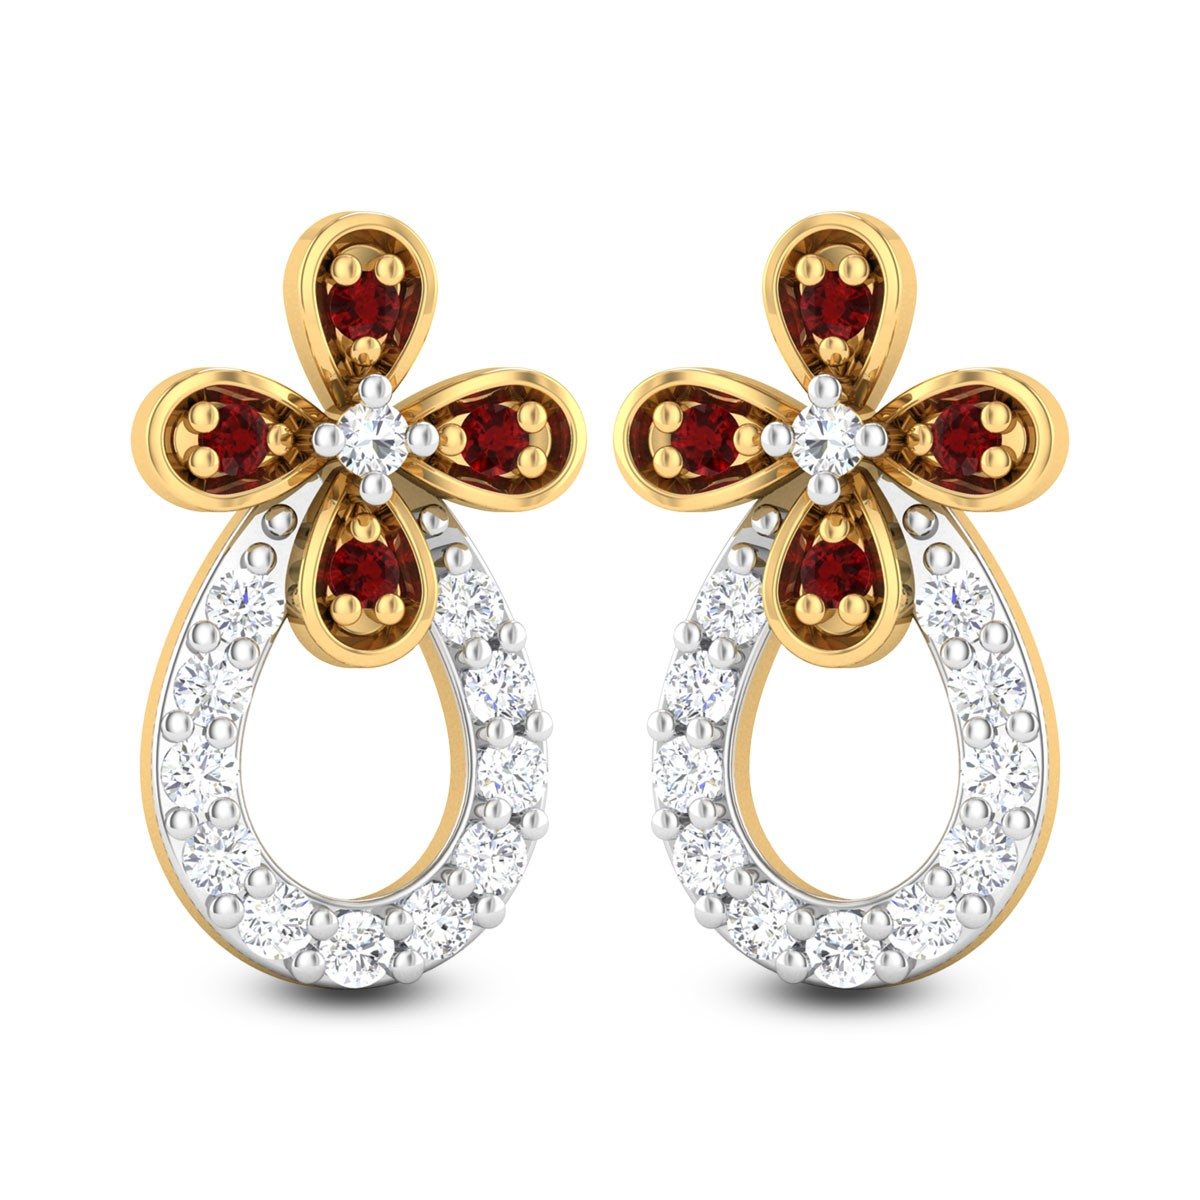 Satviki Stud Earrings